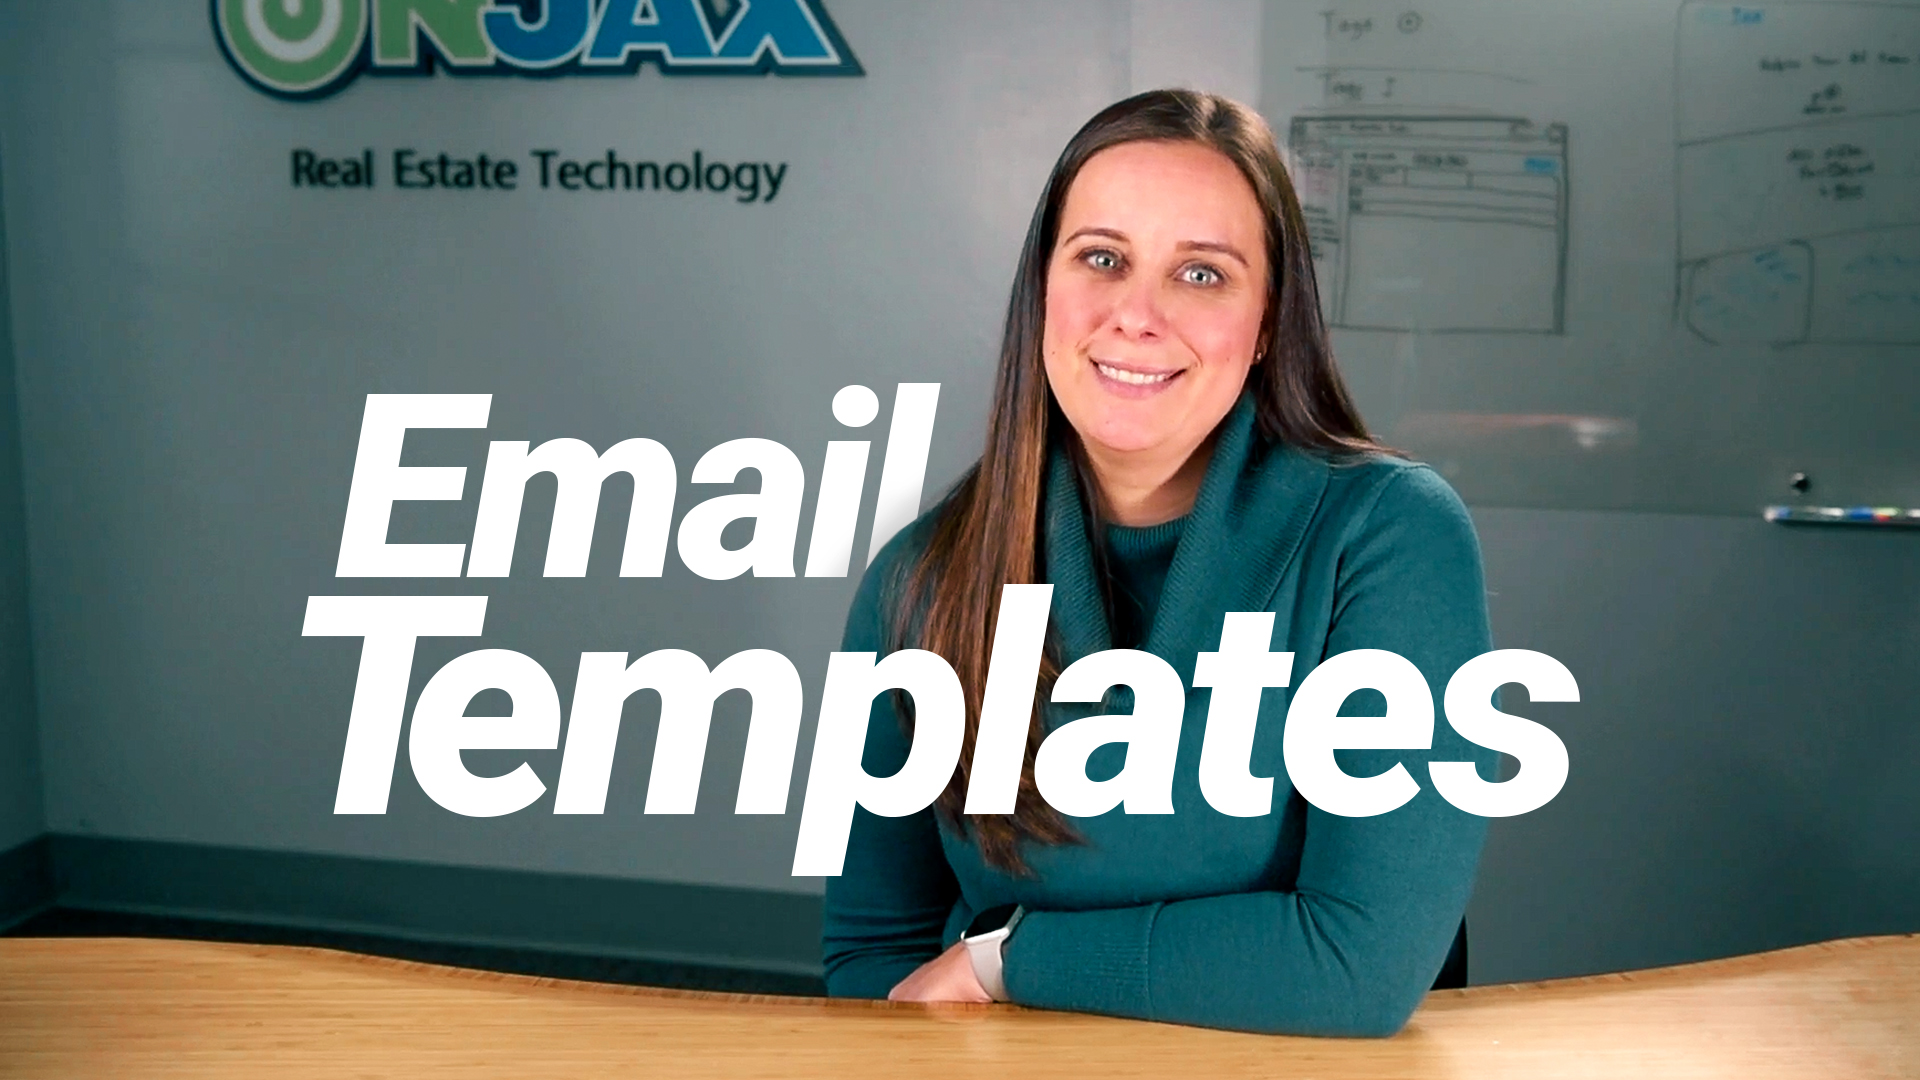 How To Video - New Email Templates for faster, Brandable Marketing